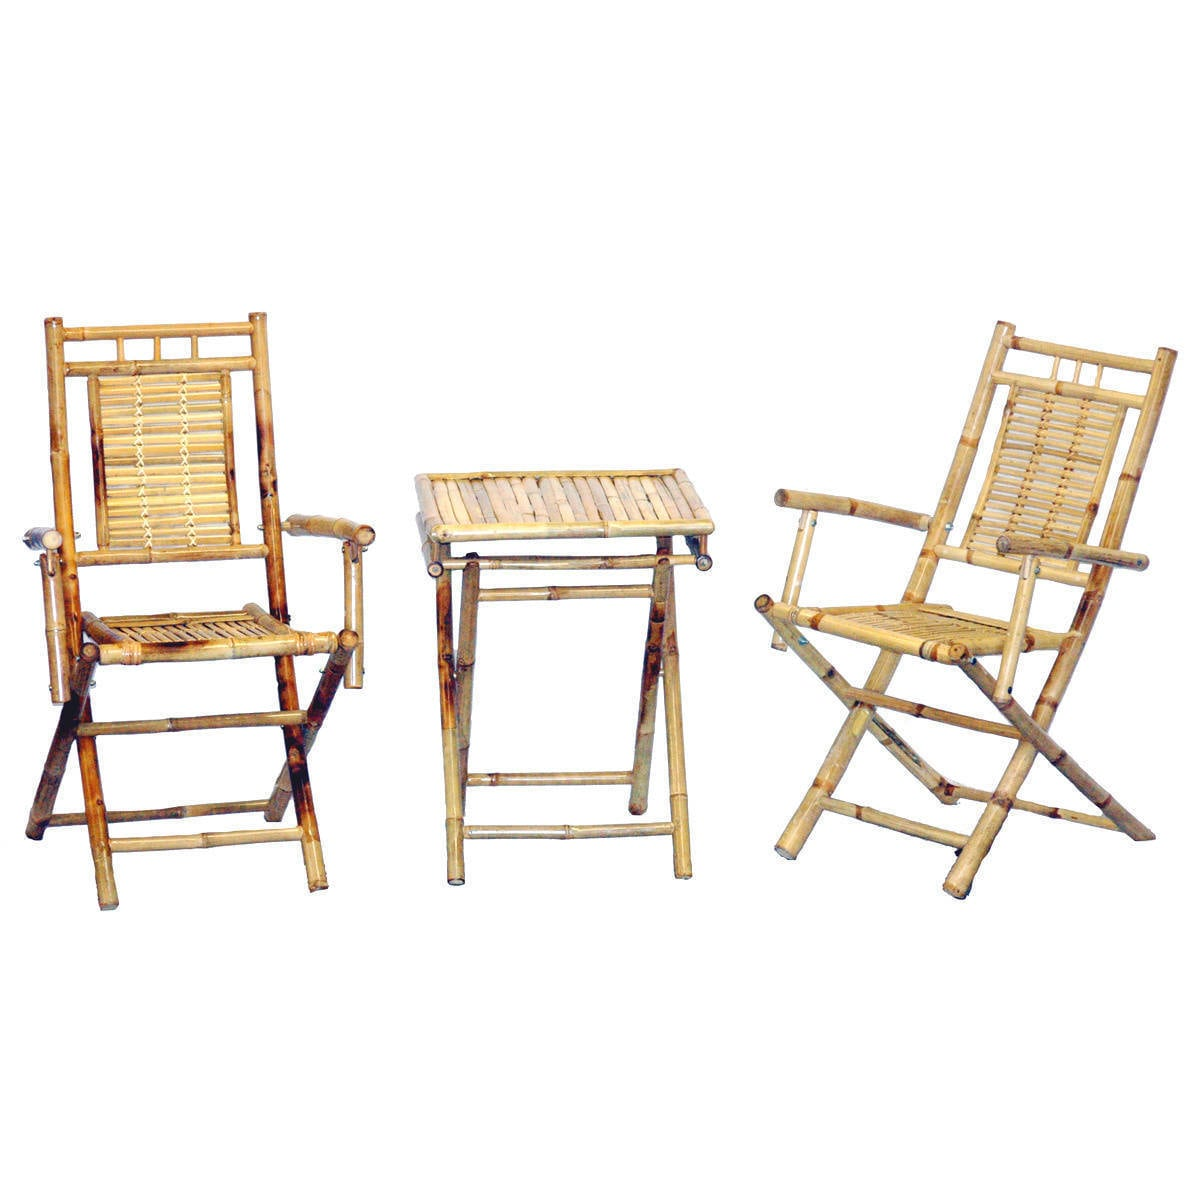 Bamboo 54 3-Piece Chairs and Small Table Set (natural), P...